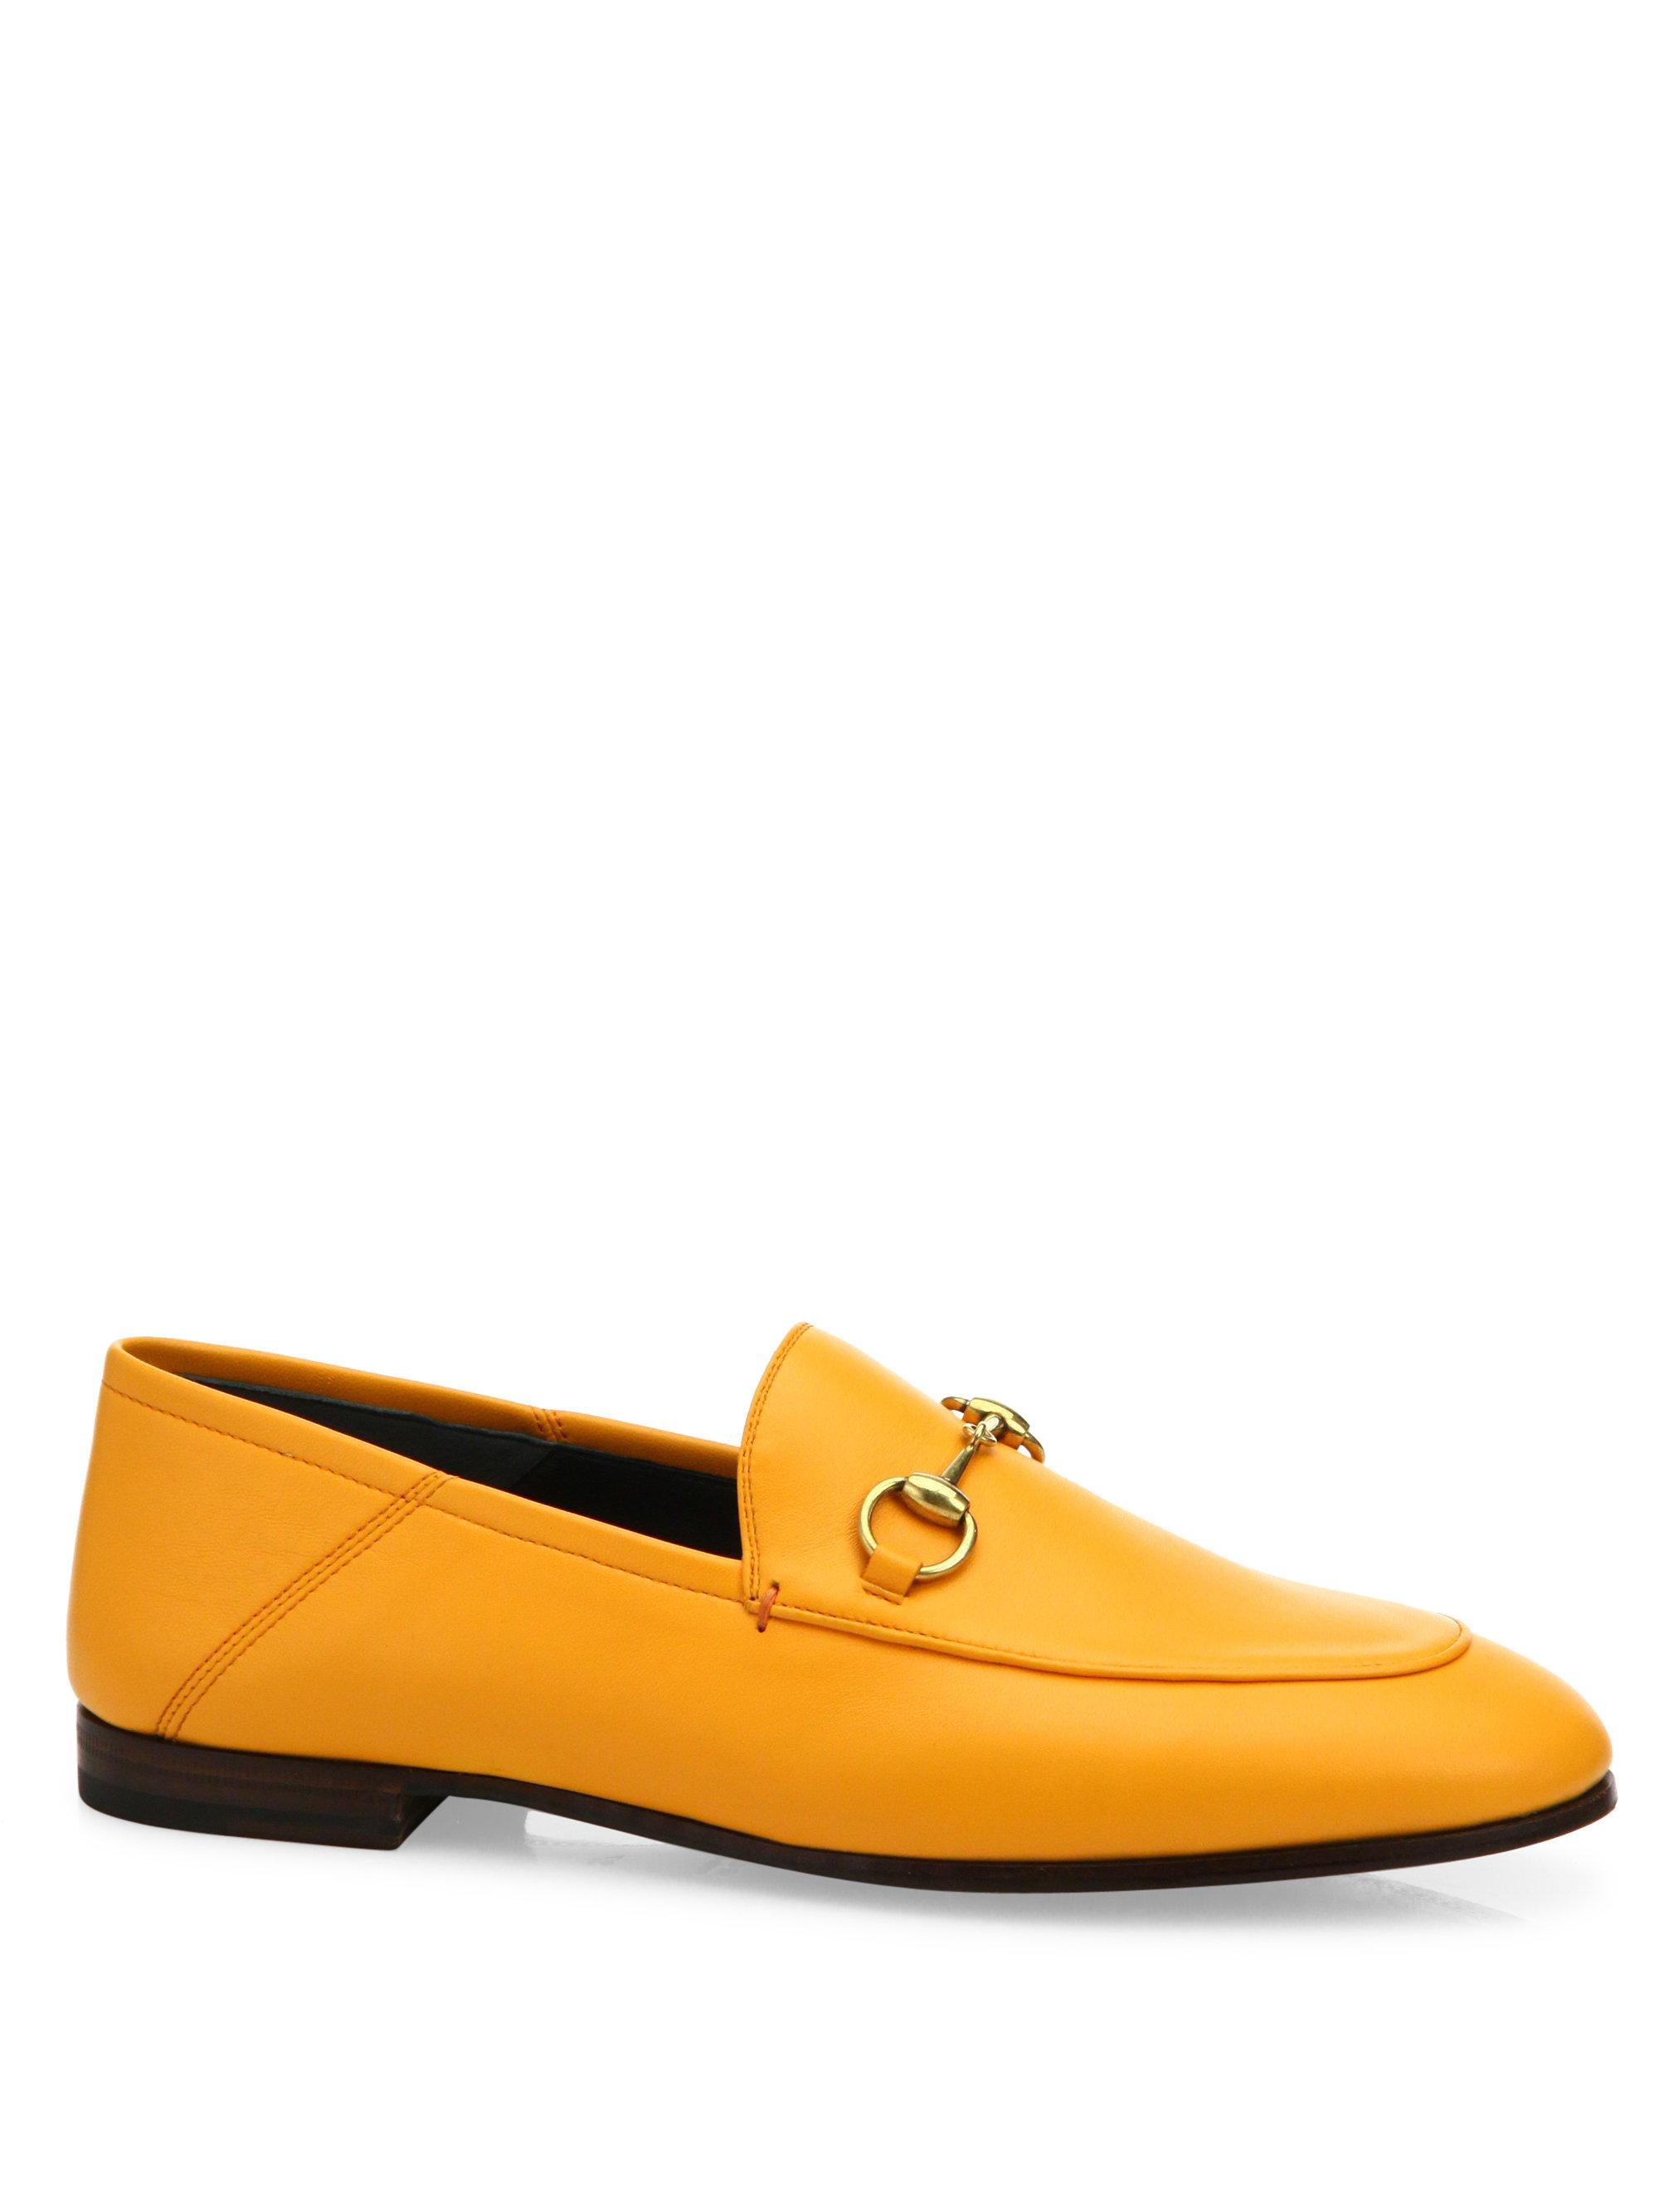 4989afb41 Lyst - Gucci Brixton Foldable Leather Loafers in Yellow